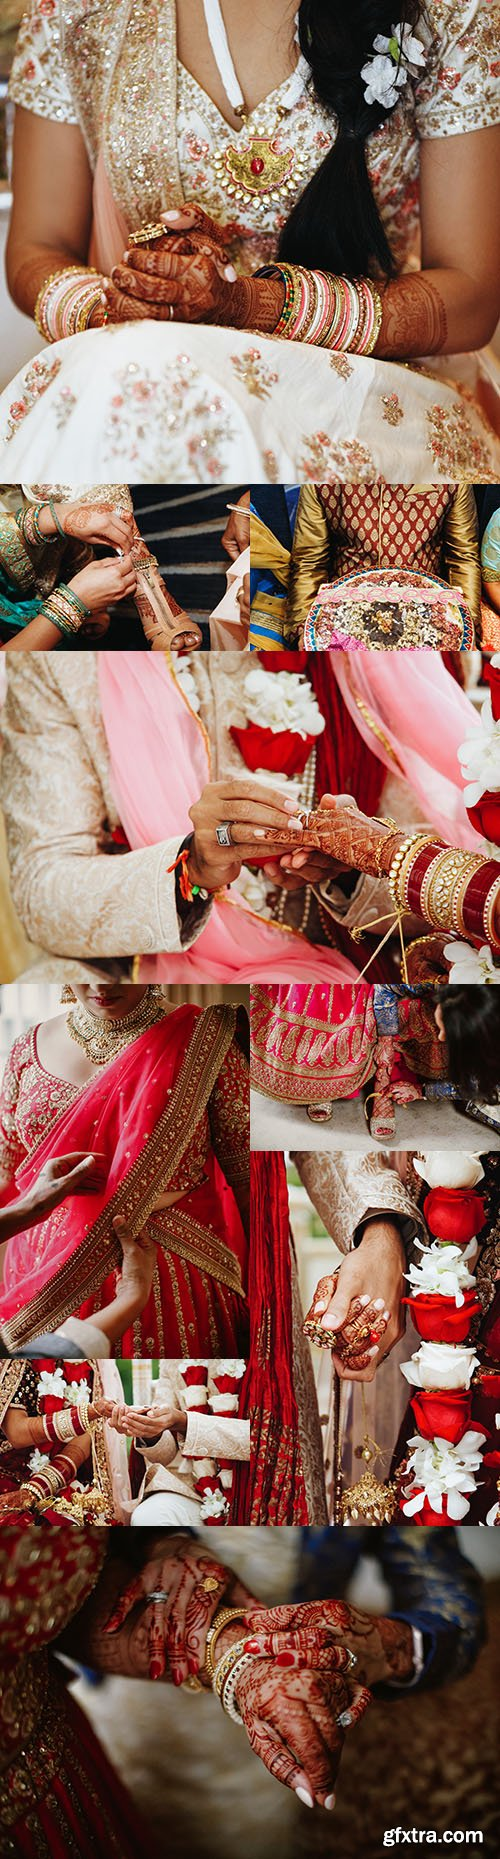 India wedding tradition ceremony and clothing items